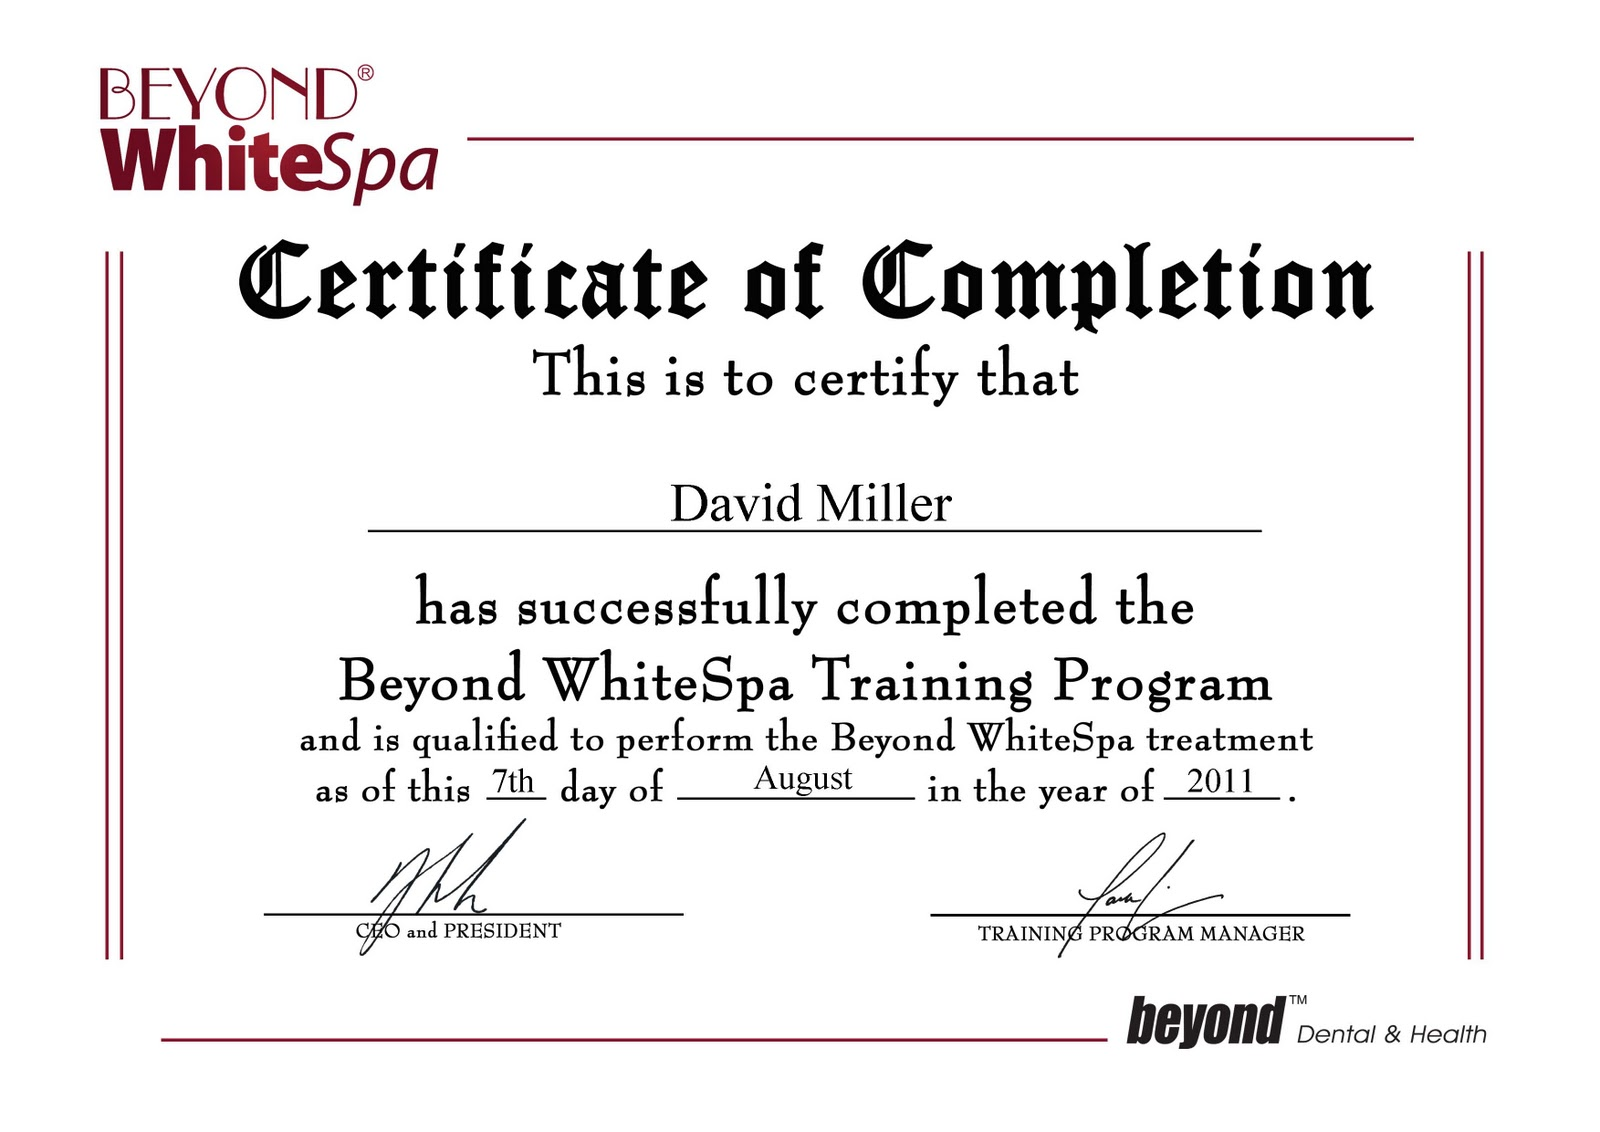 Certificate of completion training certificate designs templates certificate of completion of training template analysis paper beyond2bwhitespa2bcertificate david2bmiller yadclub Image collections